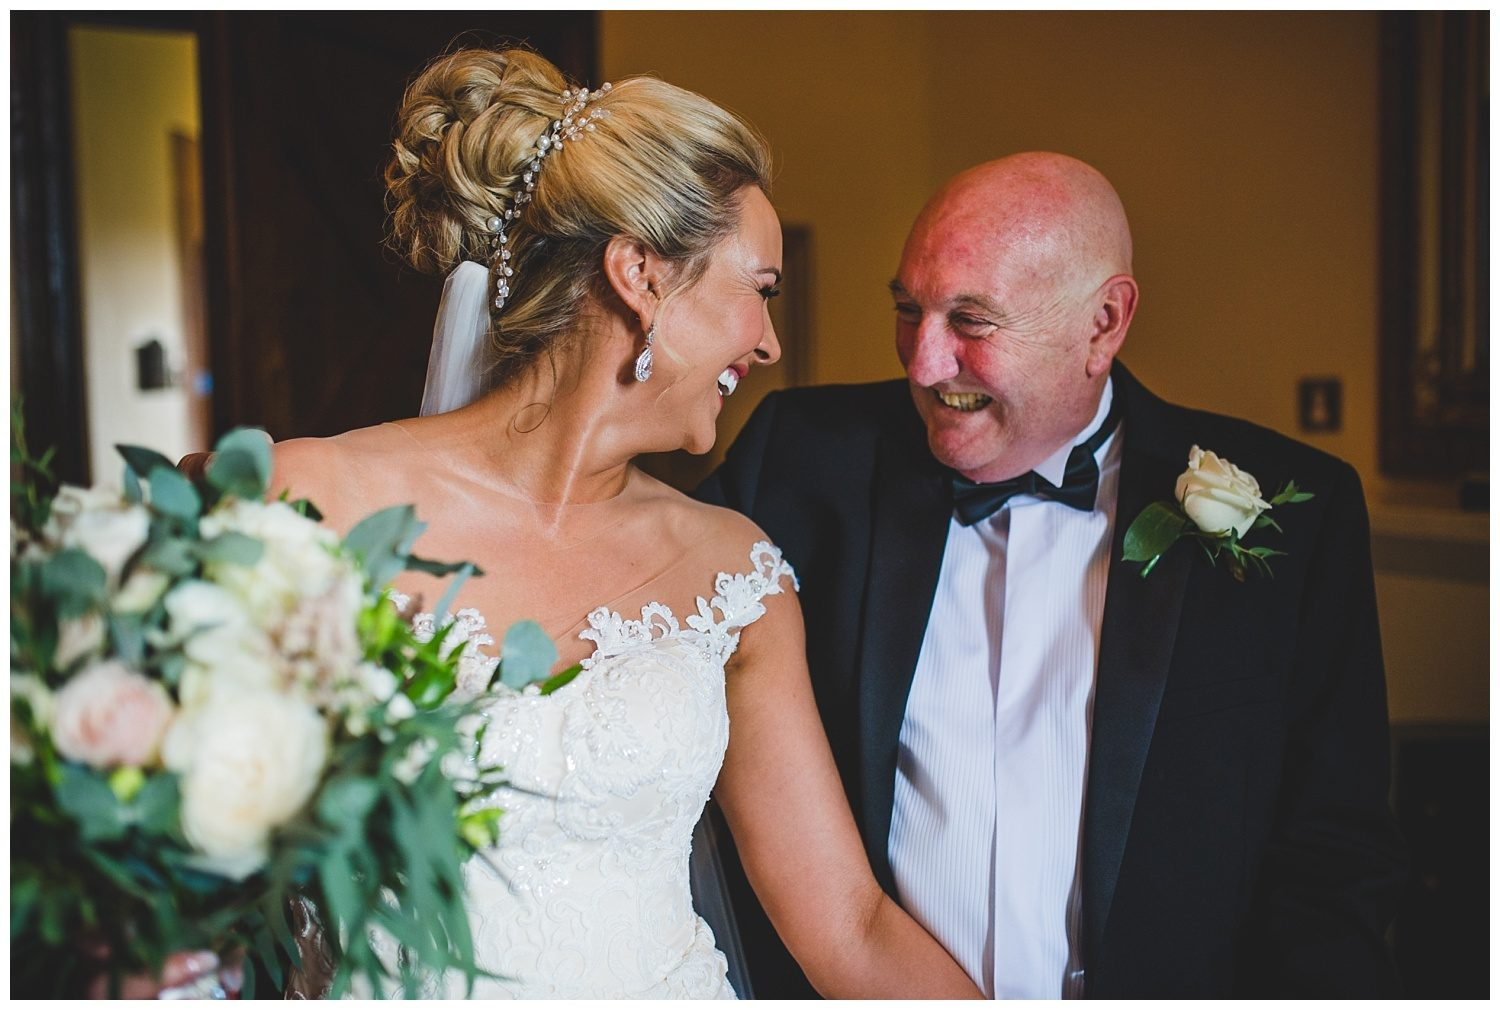 Bride and her father laughing before the ceremony at Peckforton Castle